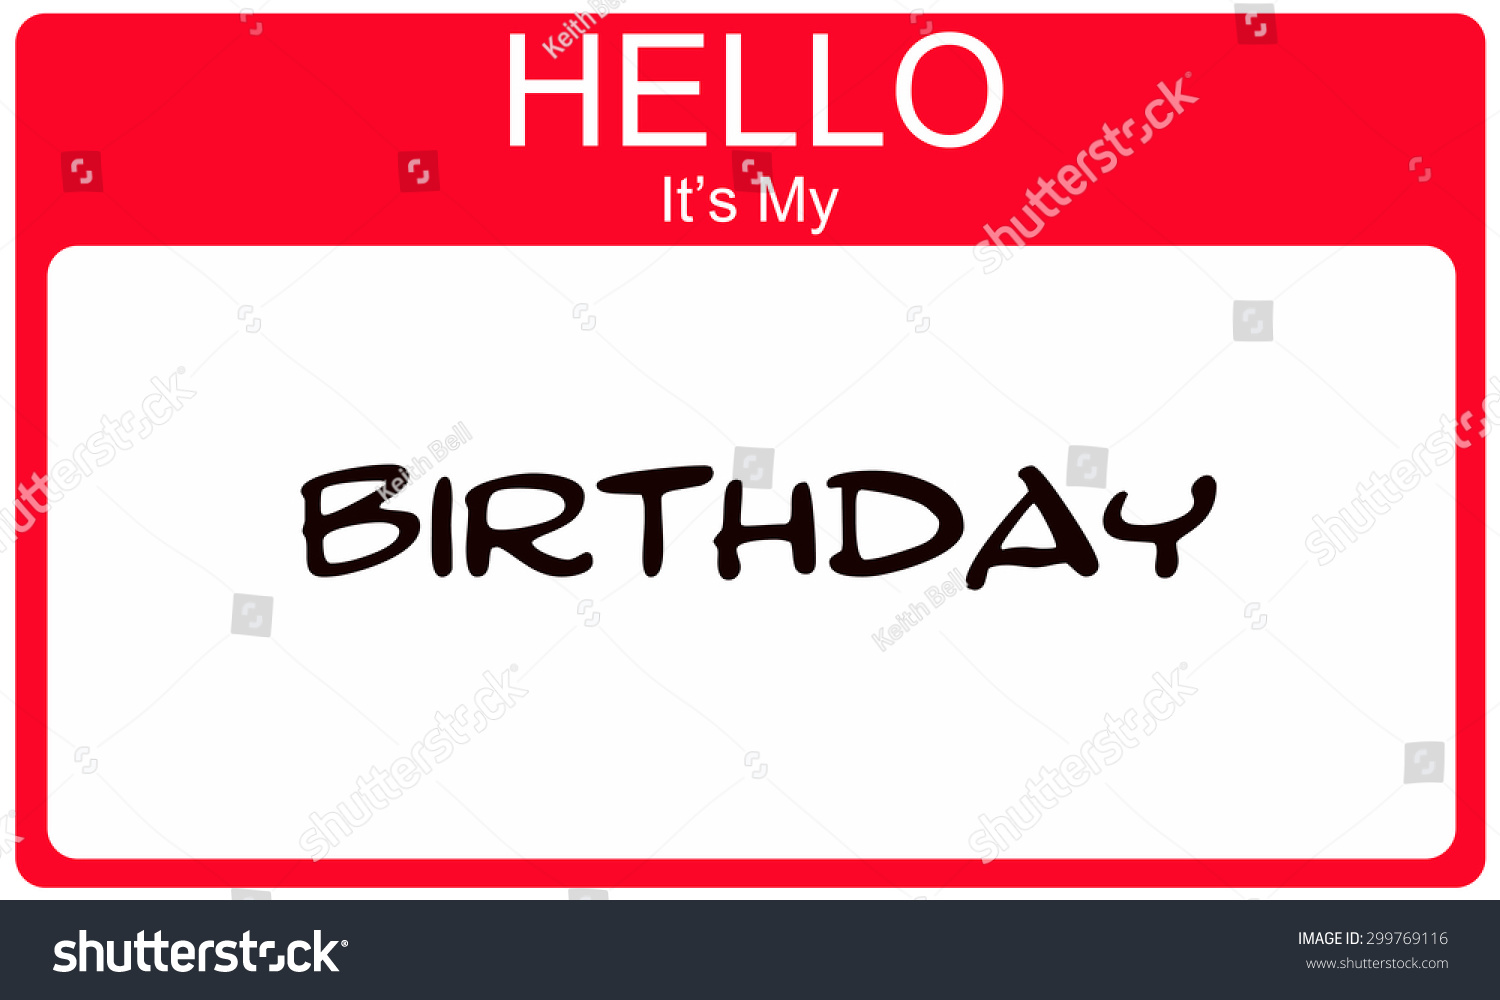 it's my birthday sign ; stock-photo-hello-it-s-my-birthday-red-name-tag-making-a-great-concept-299769116